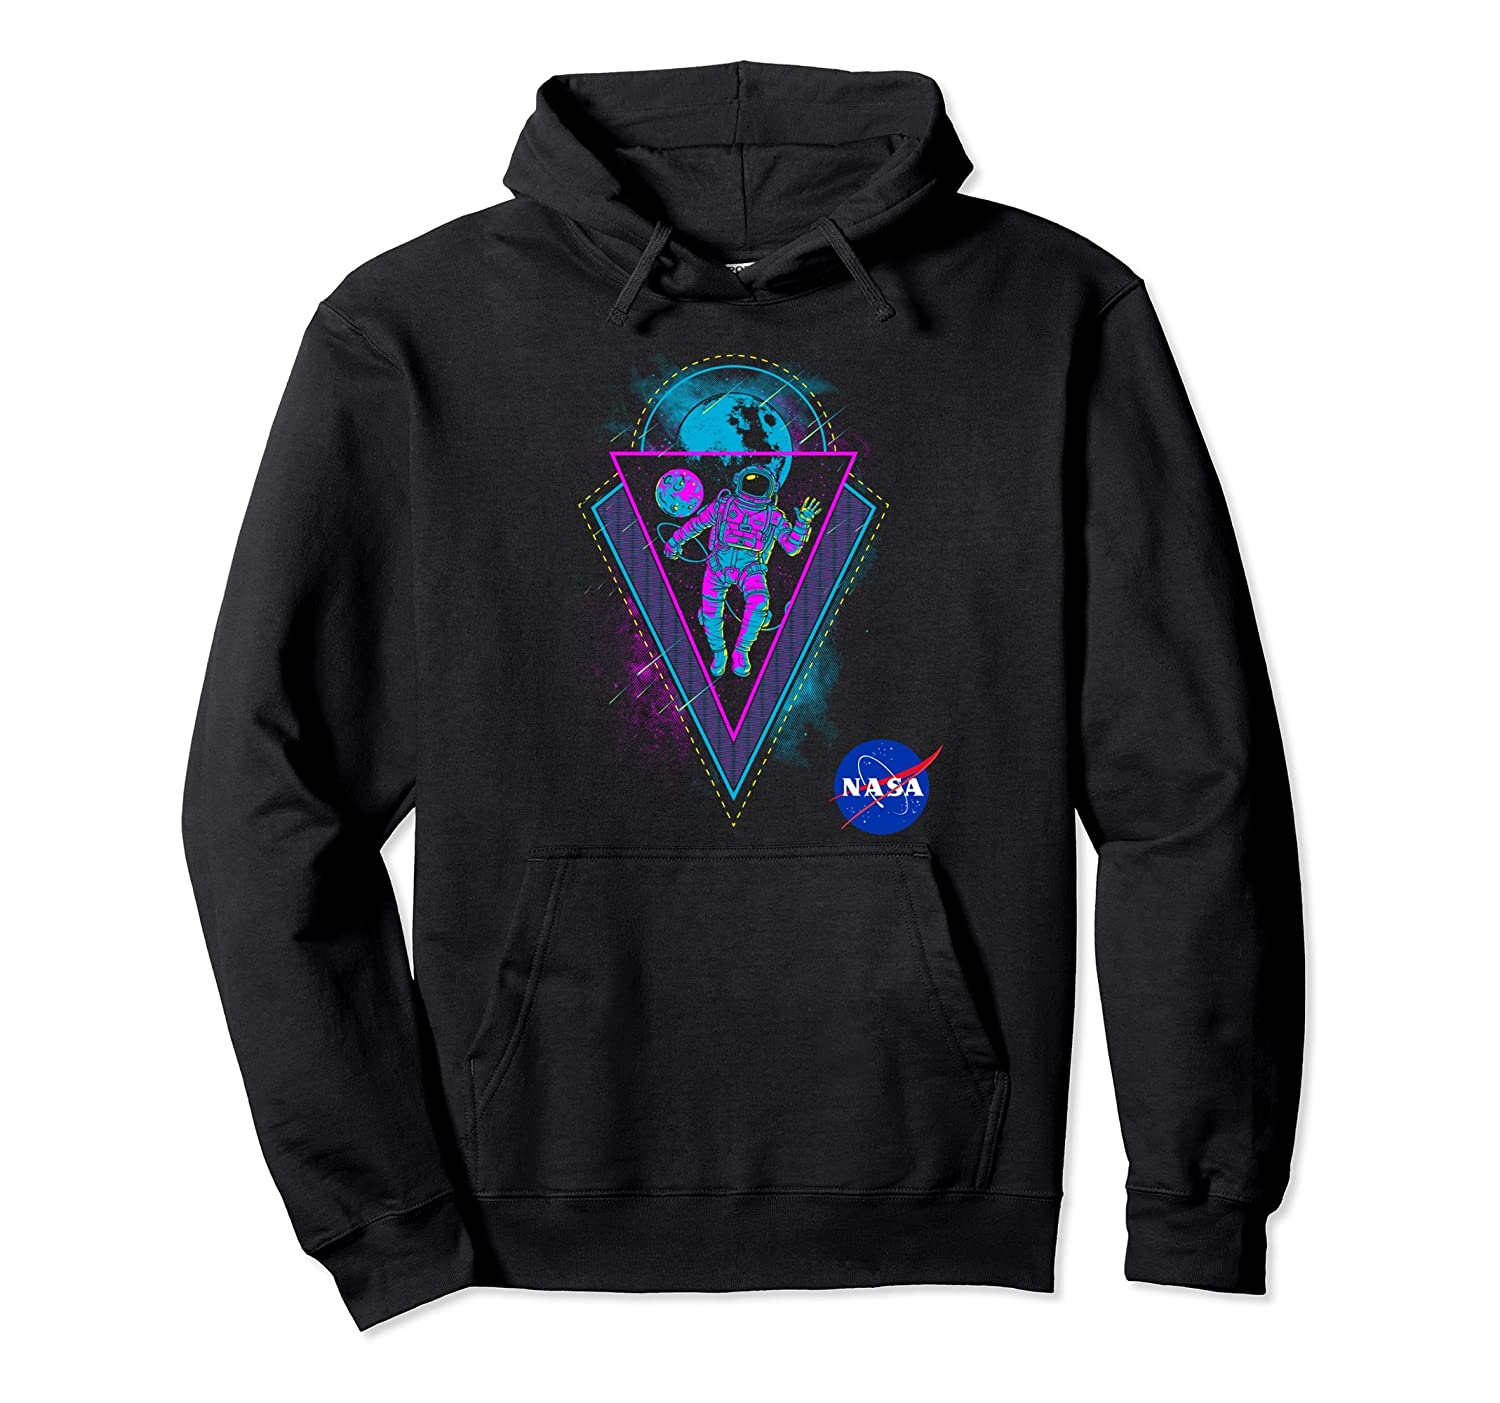 NASA Astronaut Floating in Space Techno Hoodie-Bawle